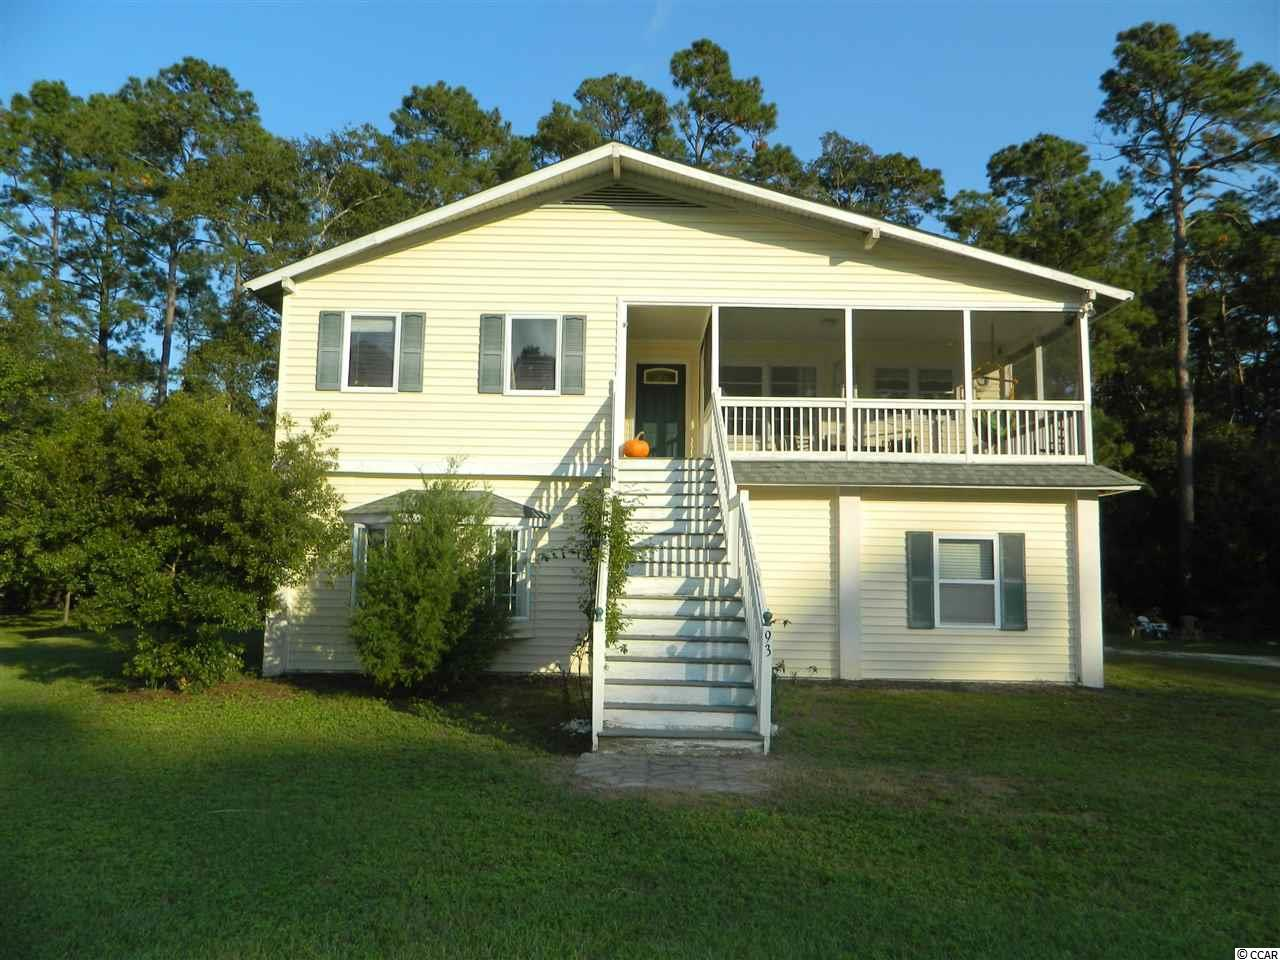 Truly a rare find - a NON-HOA property in the highly desireable North Litchfield section of Pawleys Island! This is a fixer upper with two floors of heated living space situated on a quiet cul de sac. It's a short walk or ride to the ocean at beautiful North Litchfield Beach and Waccamaw Intermediate School. The upper level has an open floor plan with an unfinished master bath/large walk in closet. It has a rear deck overlooking the backyard woods and a screened in front porch. The first floor boasts tongue and groove pine plank 9 foot ceilings and plenty of storage area, and with much of it living space left partially unfinished, you'll have a virtually blank canvas to make it your own! This hidden gem is perfectly situated for easy access to the pristine settings of Huntington Beach State Park and Brookgreen Gardens, the Waccamaw Neck Bikeway, and the Intracoastal Waterway, and some of the best golf courses on the Grand Strand, along with all the entertainment that Pawleys Island and Murrells Inlet have to offer.